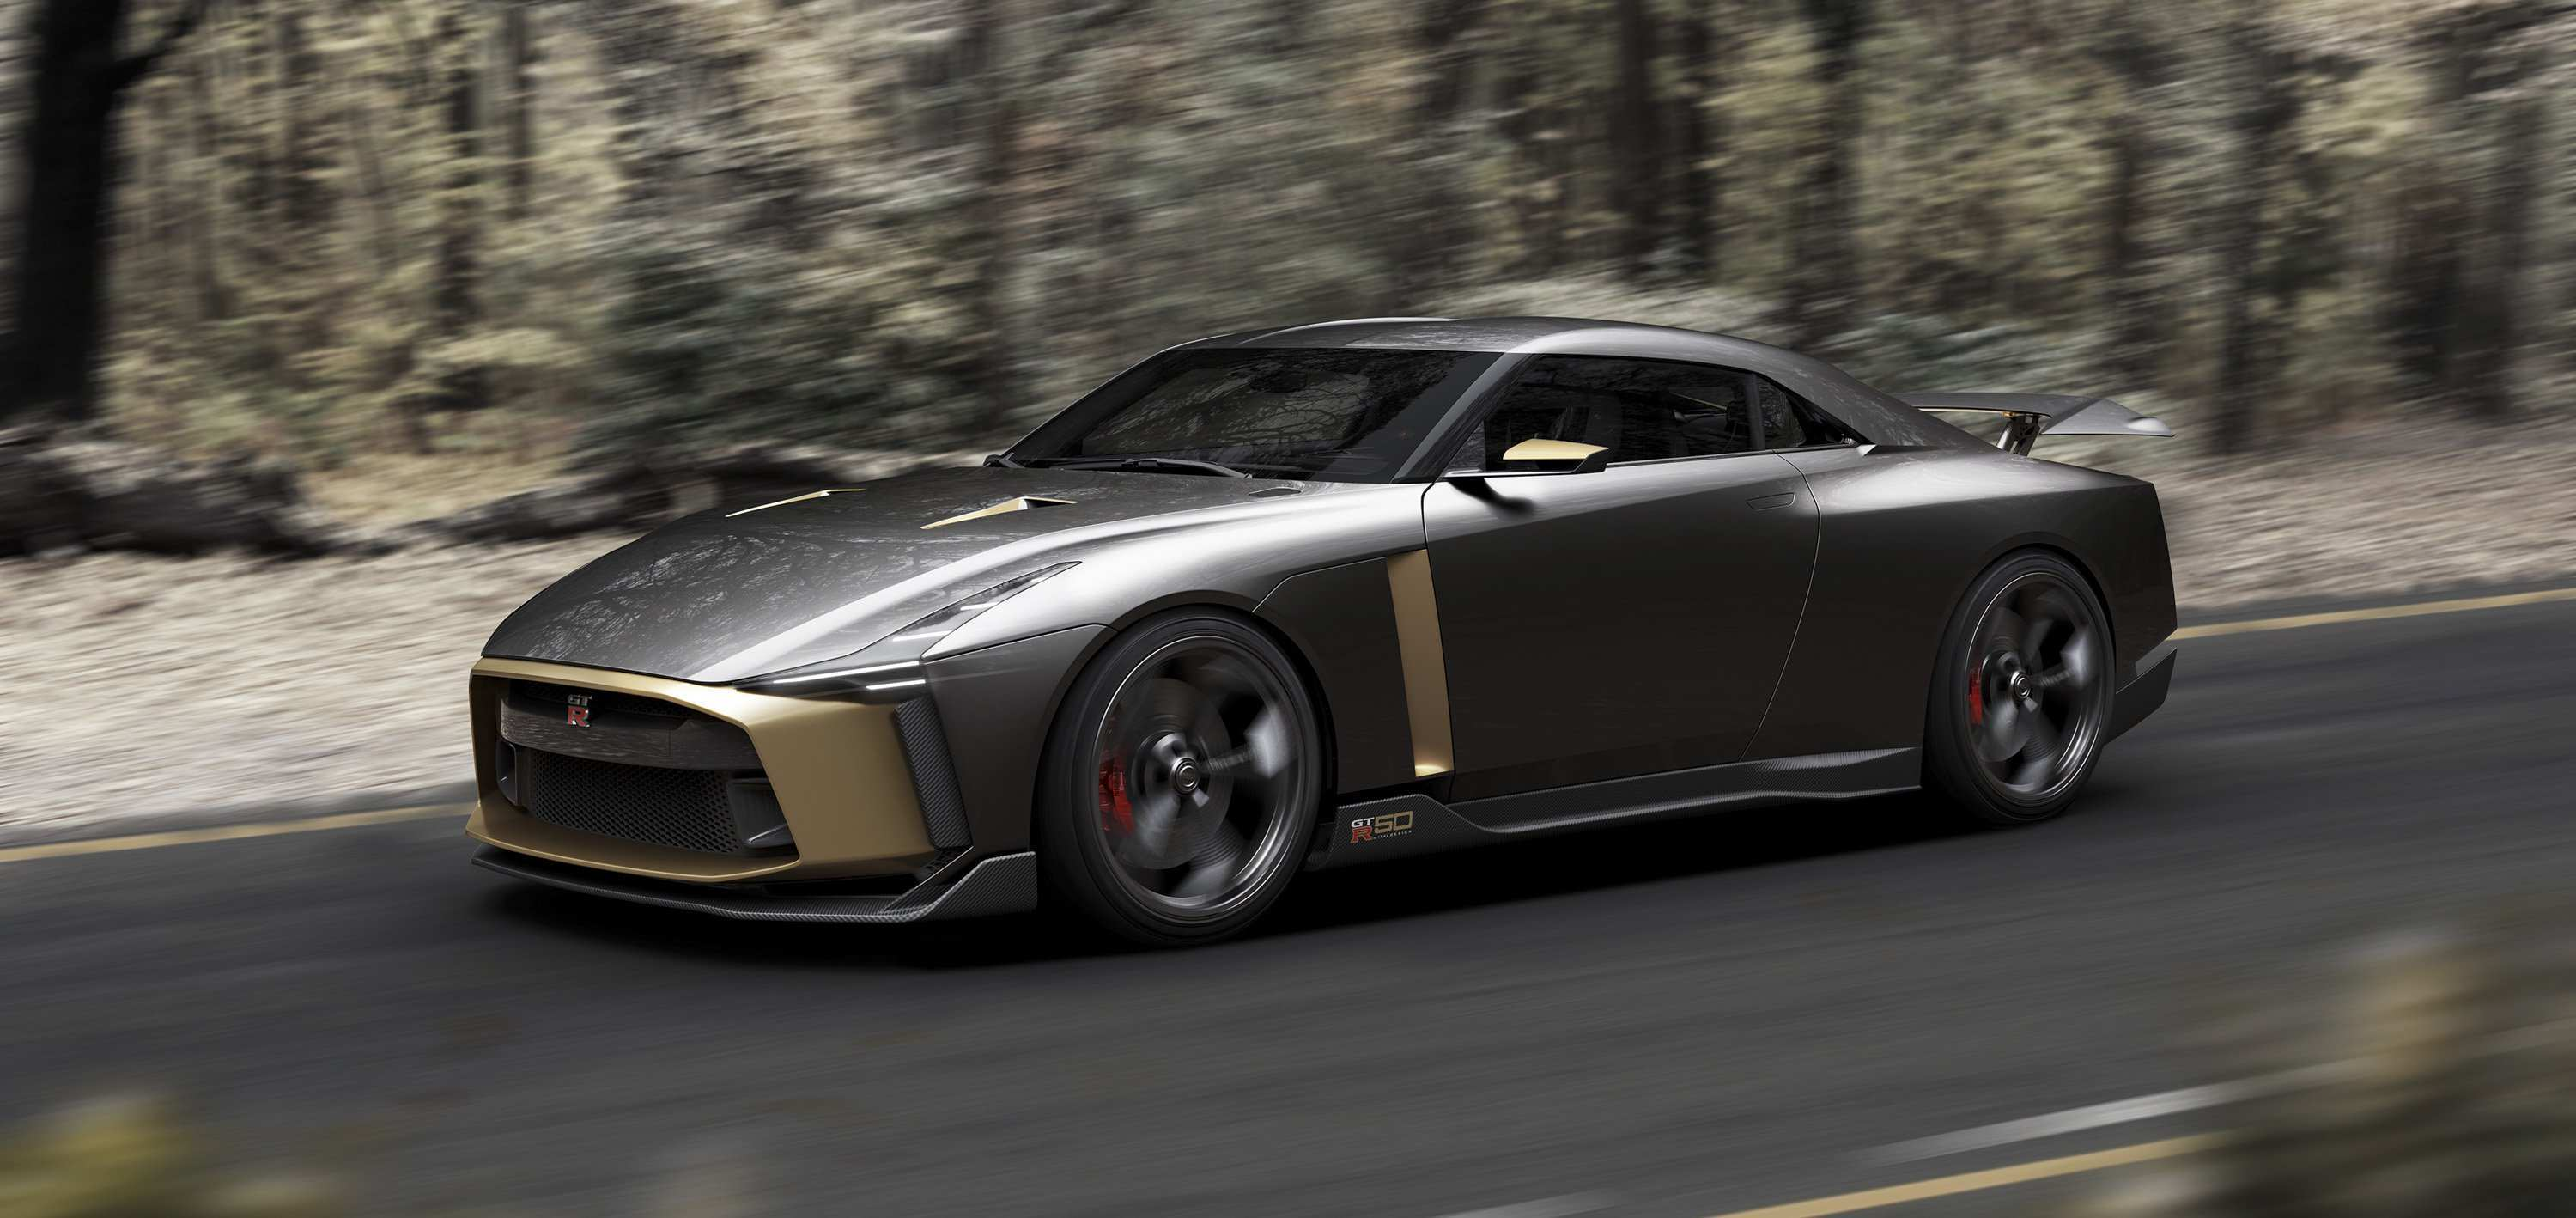 30 All New Nissan Gt R 36 2020 Price Redesign